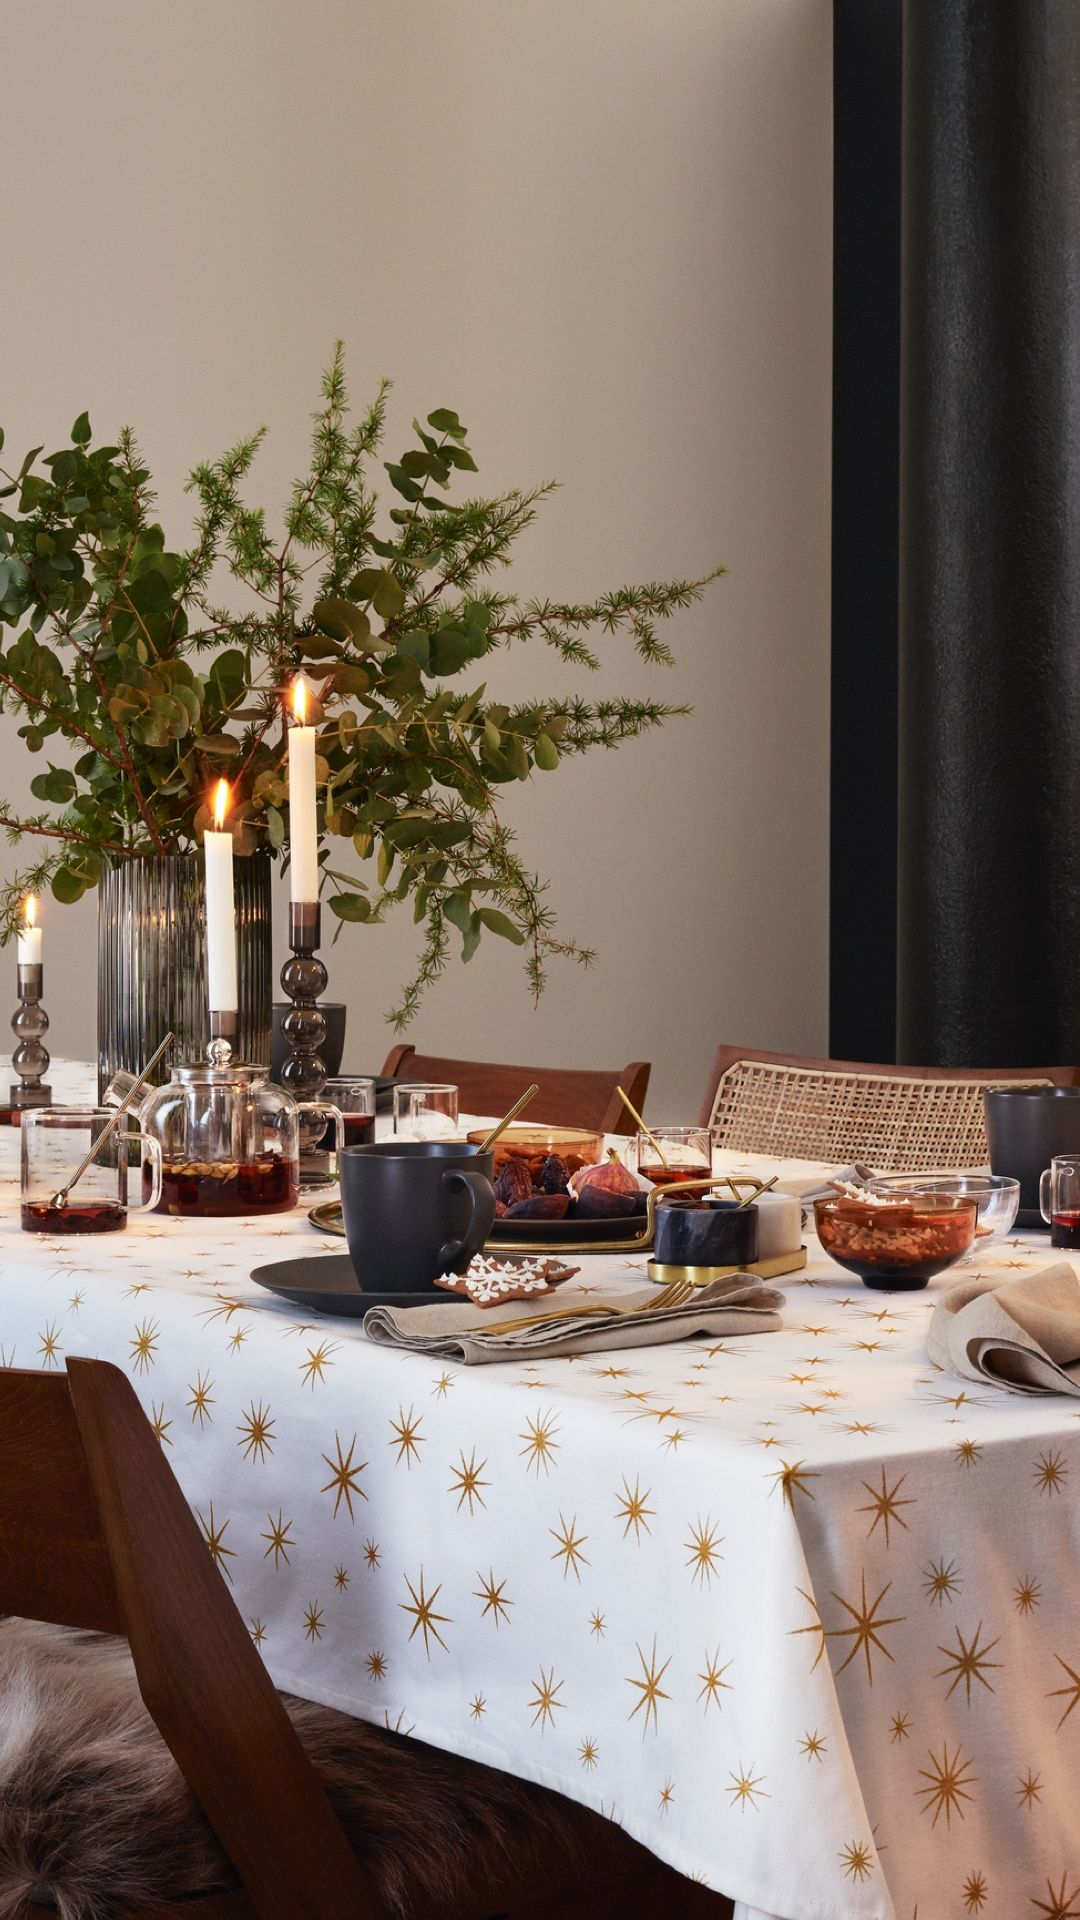 H M Home Set The Scene For A Festive Holiday Get Together With A Star Studded Table Cloth Grey Tableware And Golden Cutlery H M Home Modern Sofa Table Decor